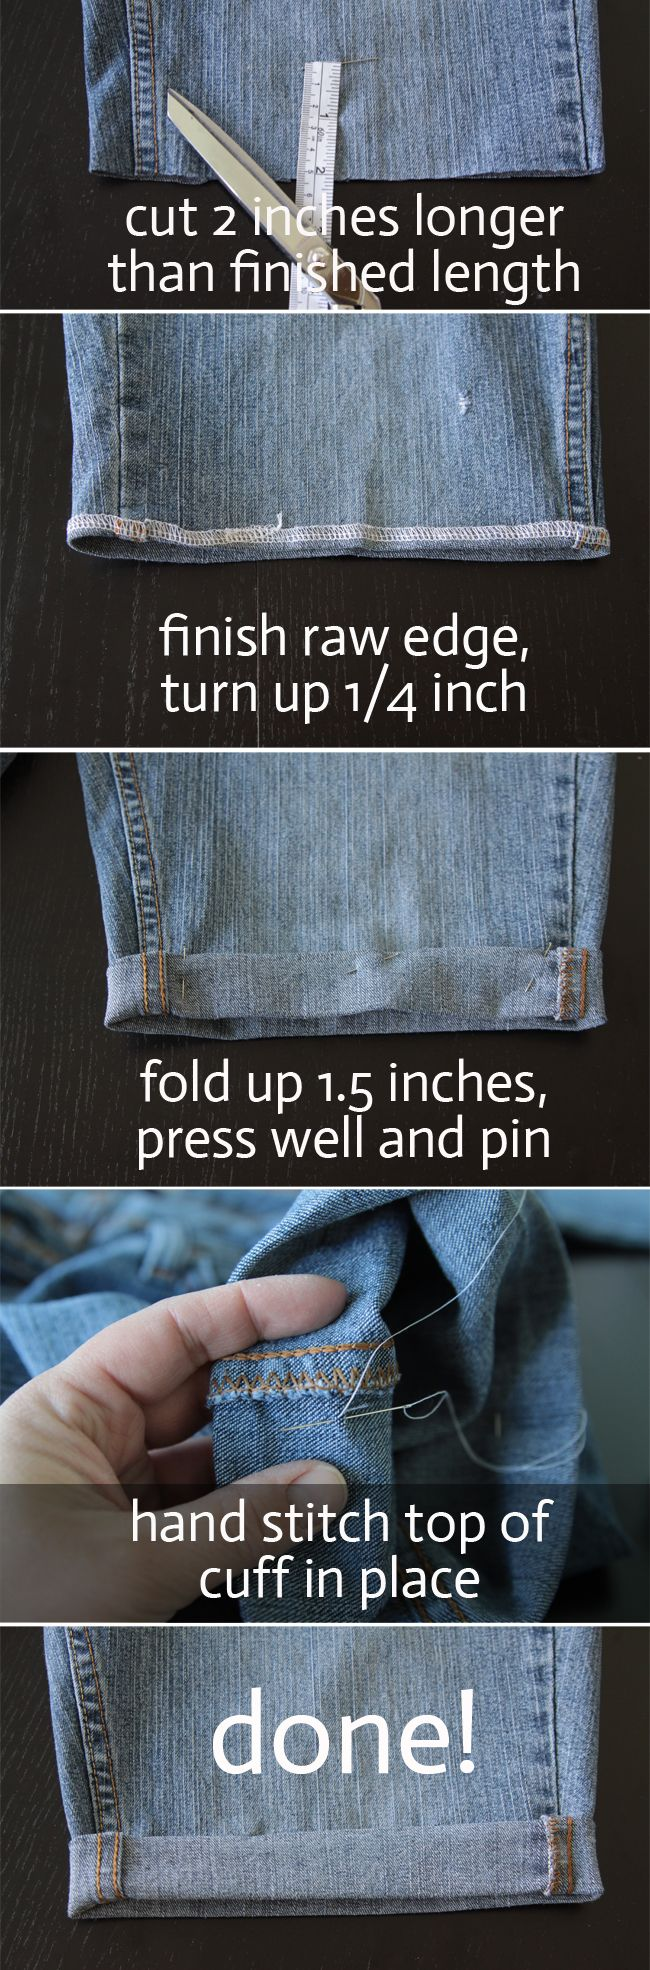 www.itsalwaysautumn.com - three methods for turning jeans into shorts in 20 minutes or less - cuffed cutoffs